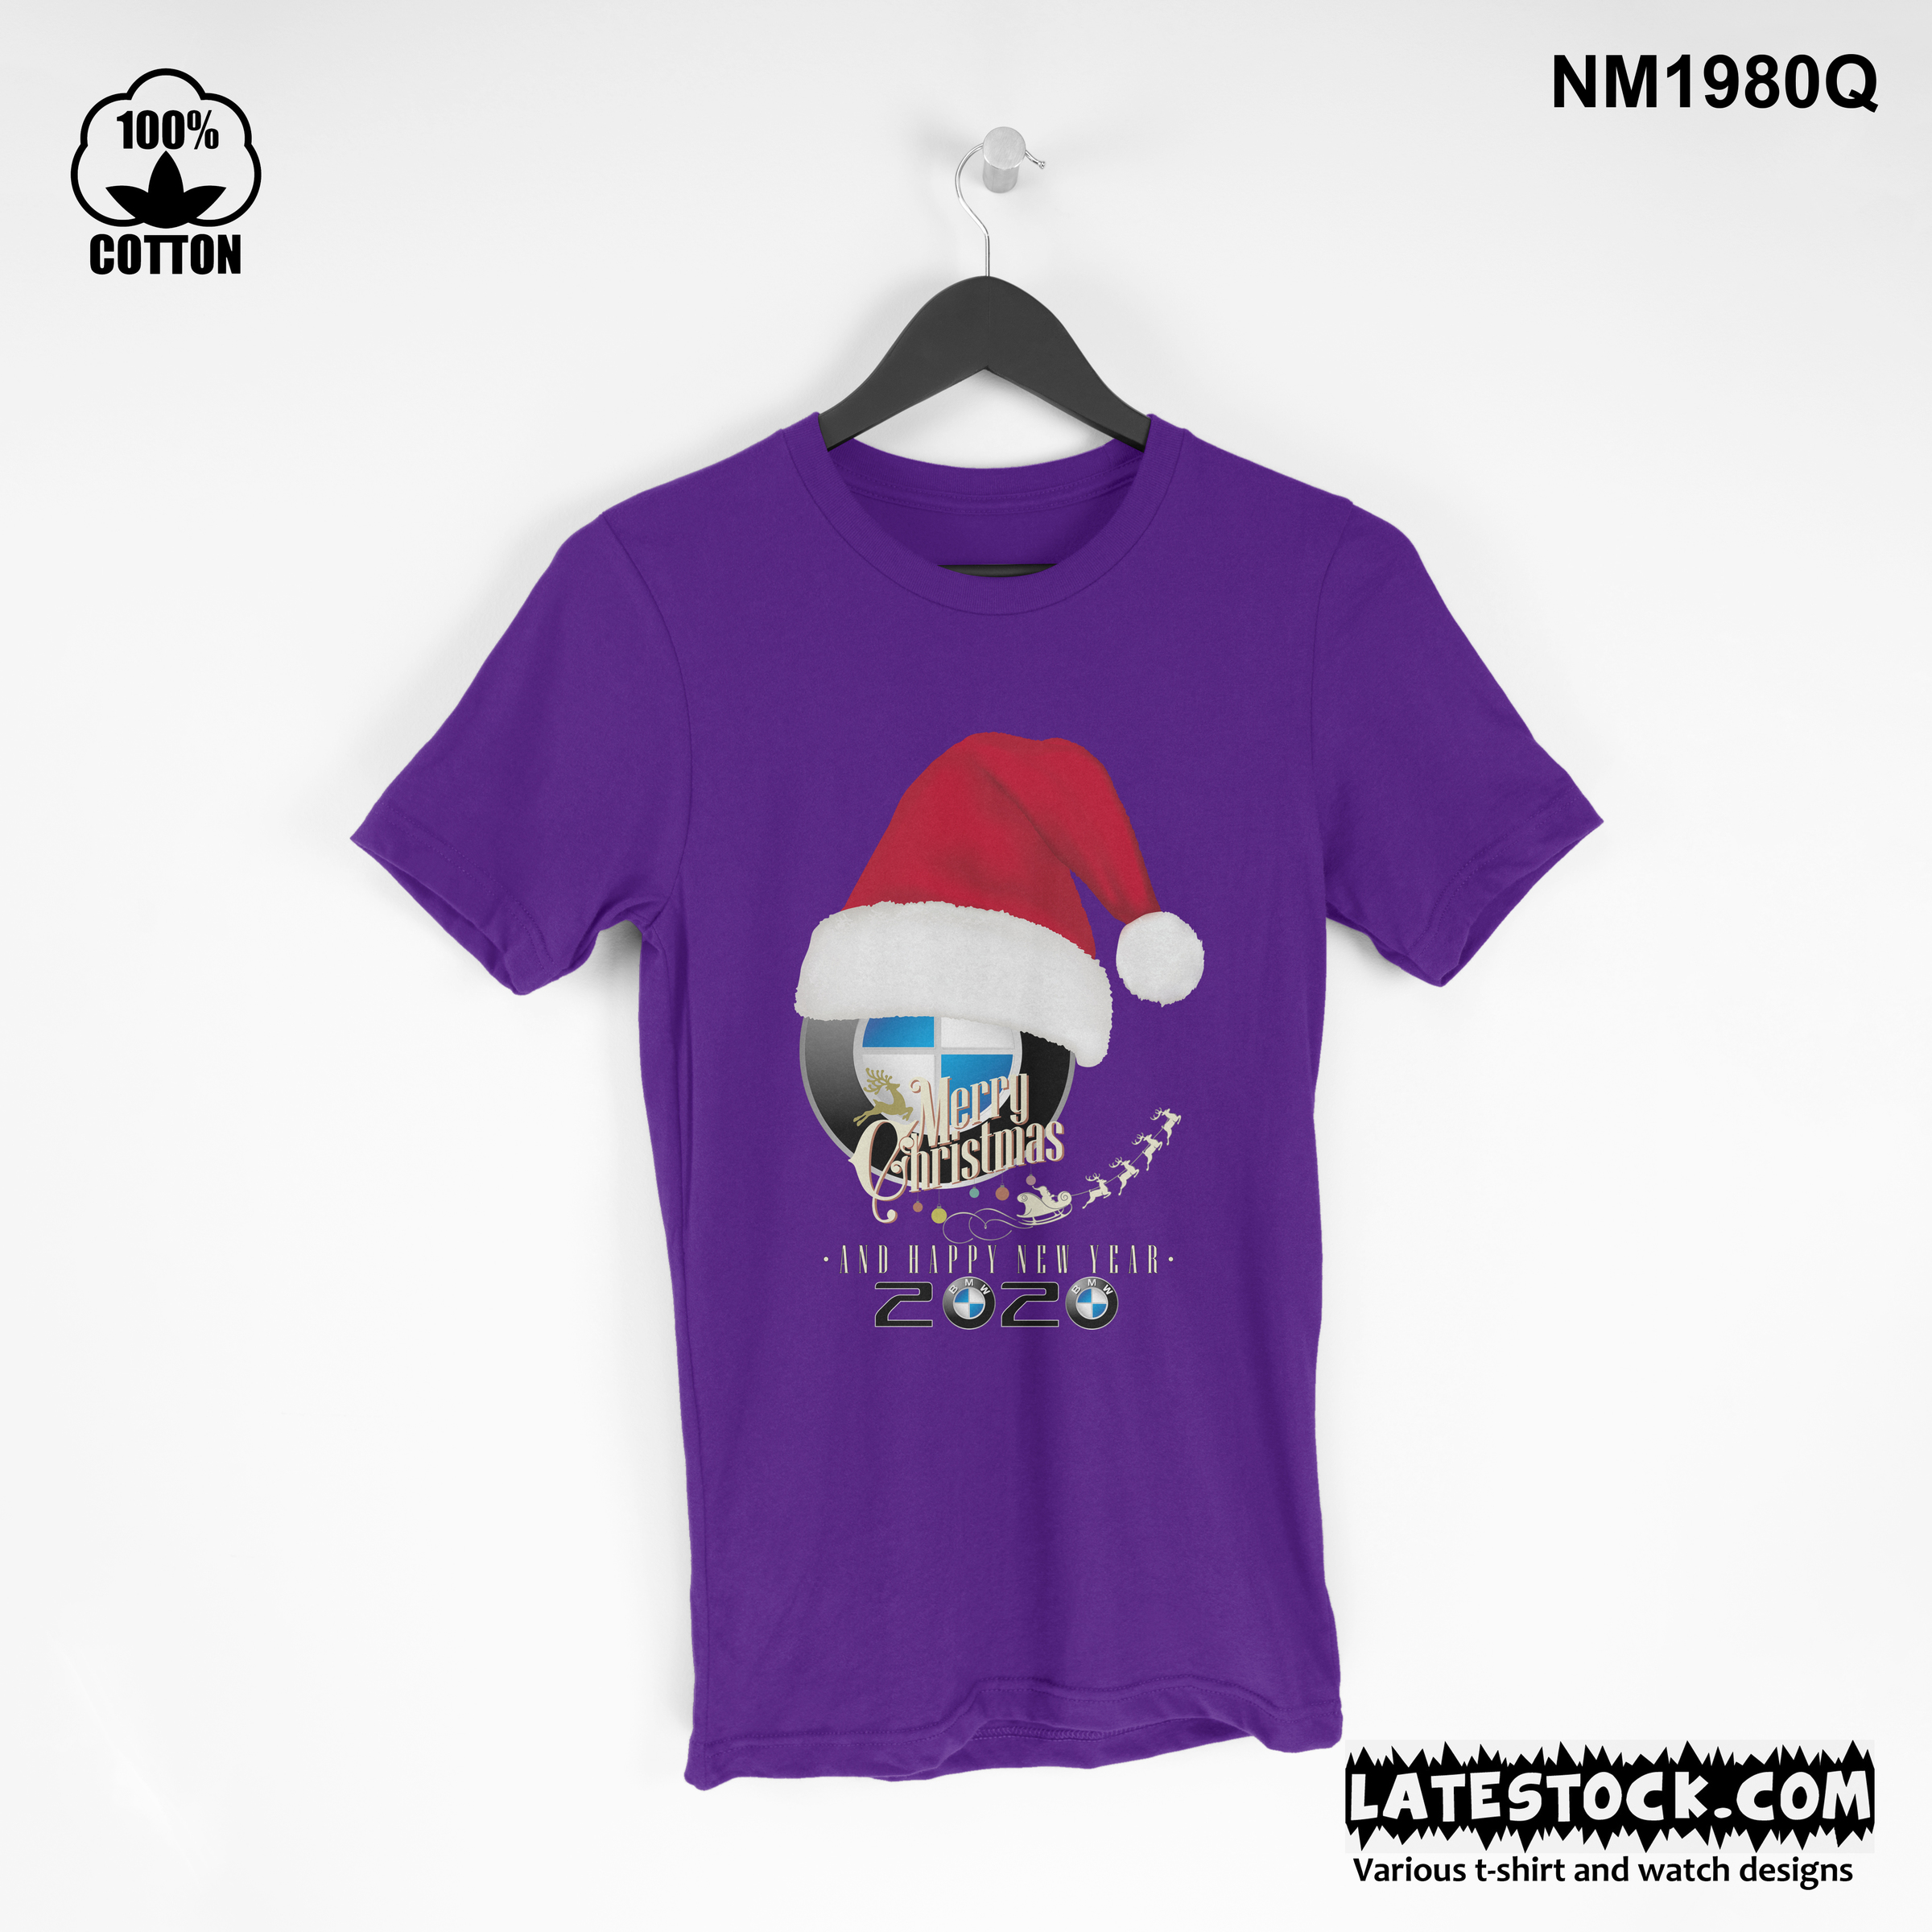 1.30 new Design BMW cristmas and new year t shirt Tee best gift blue violet.jpg